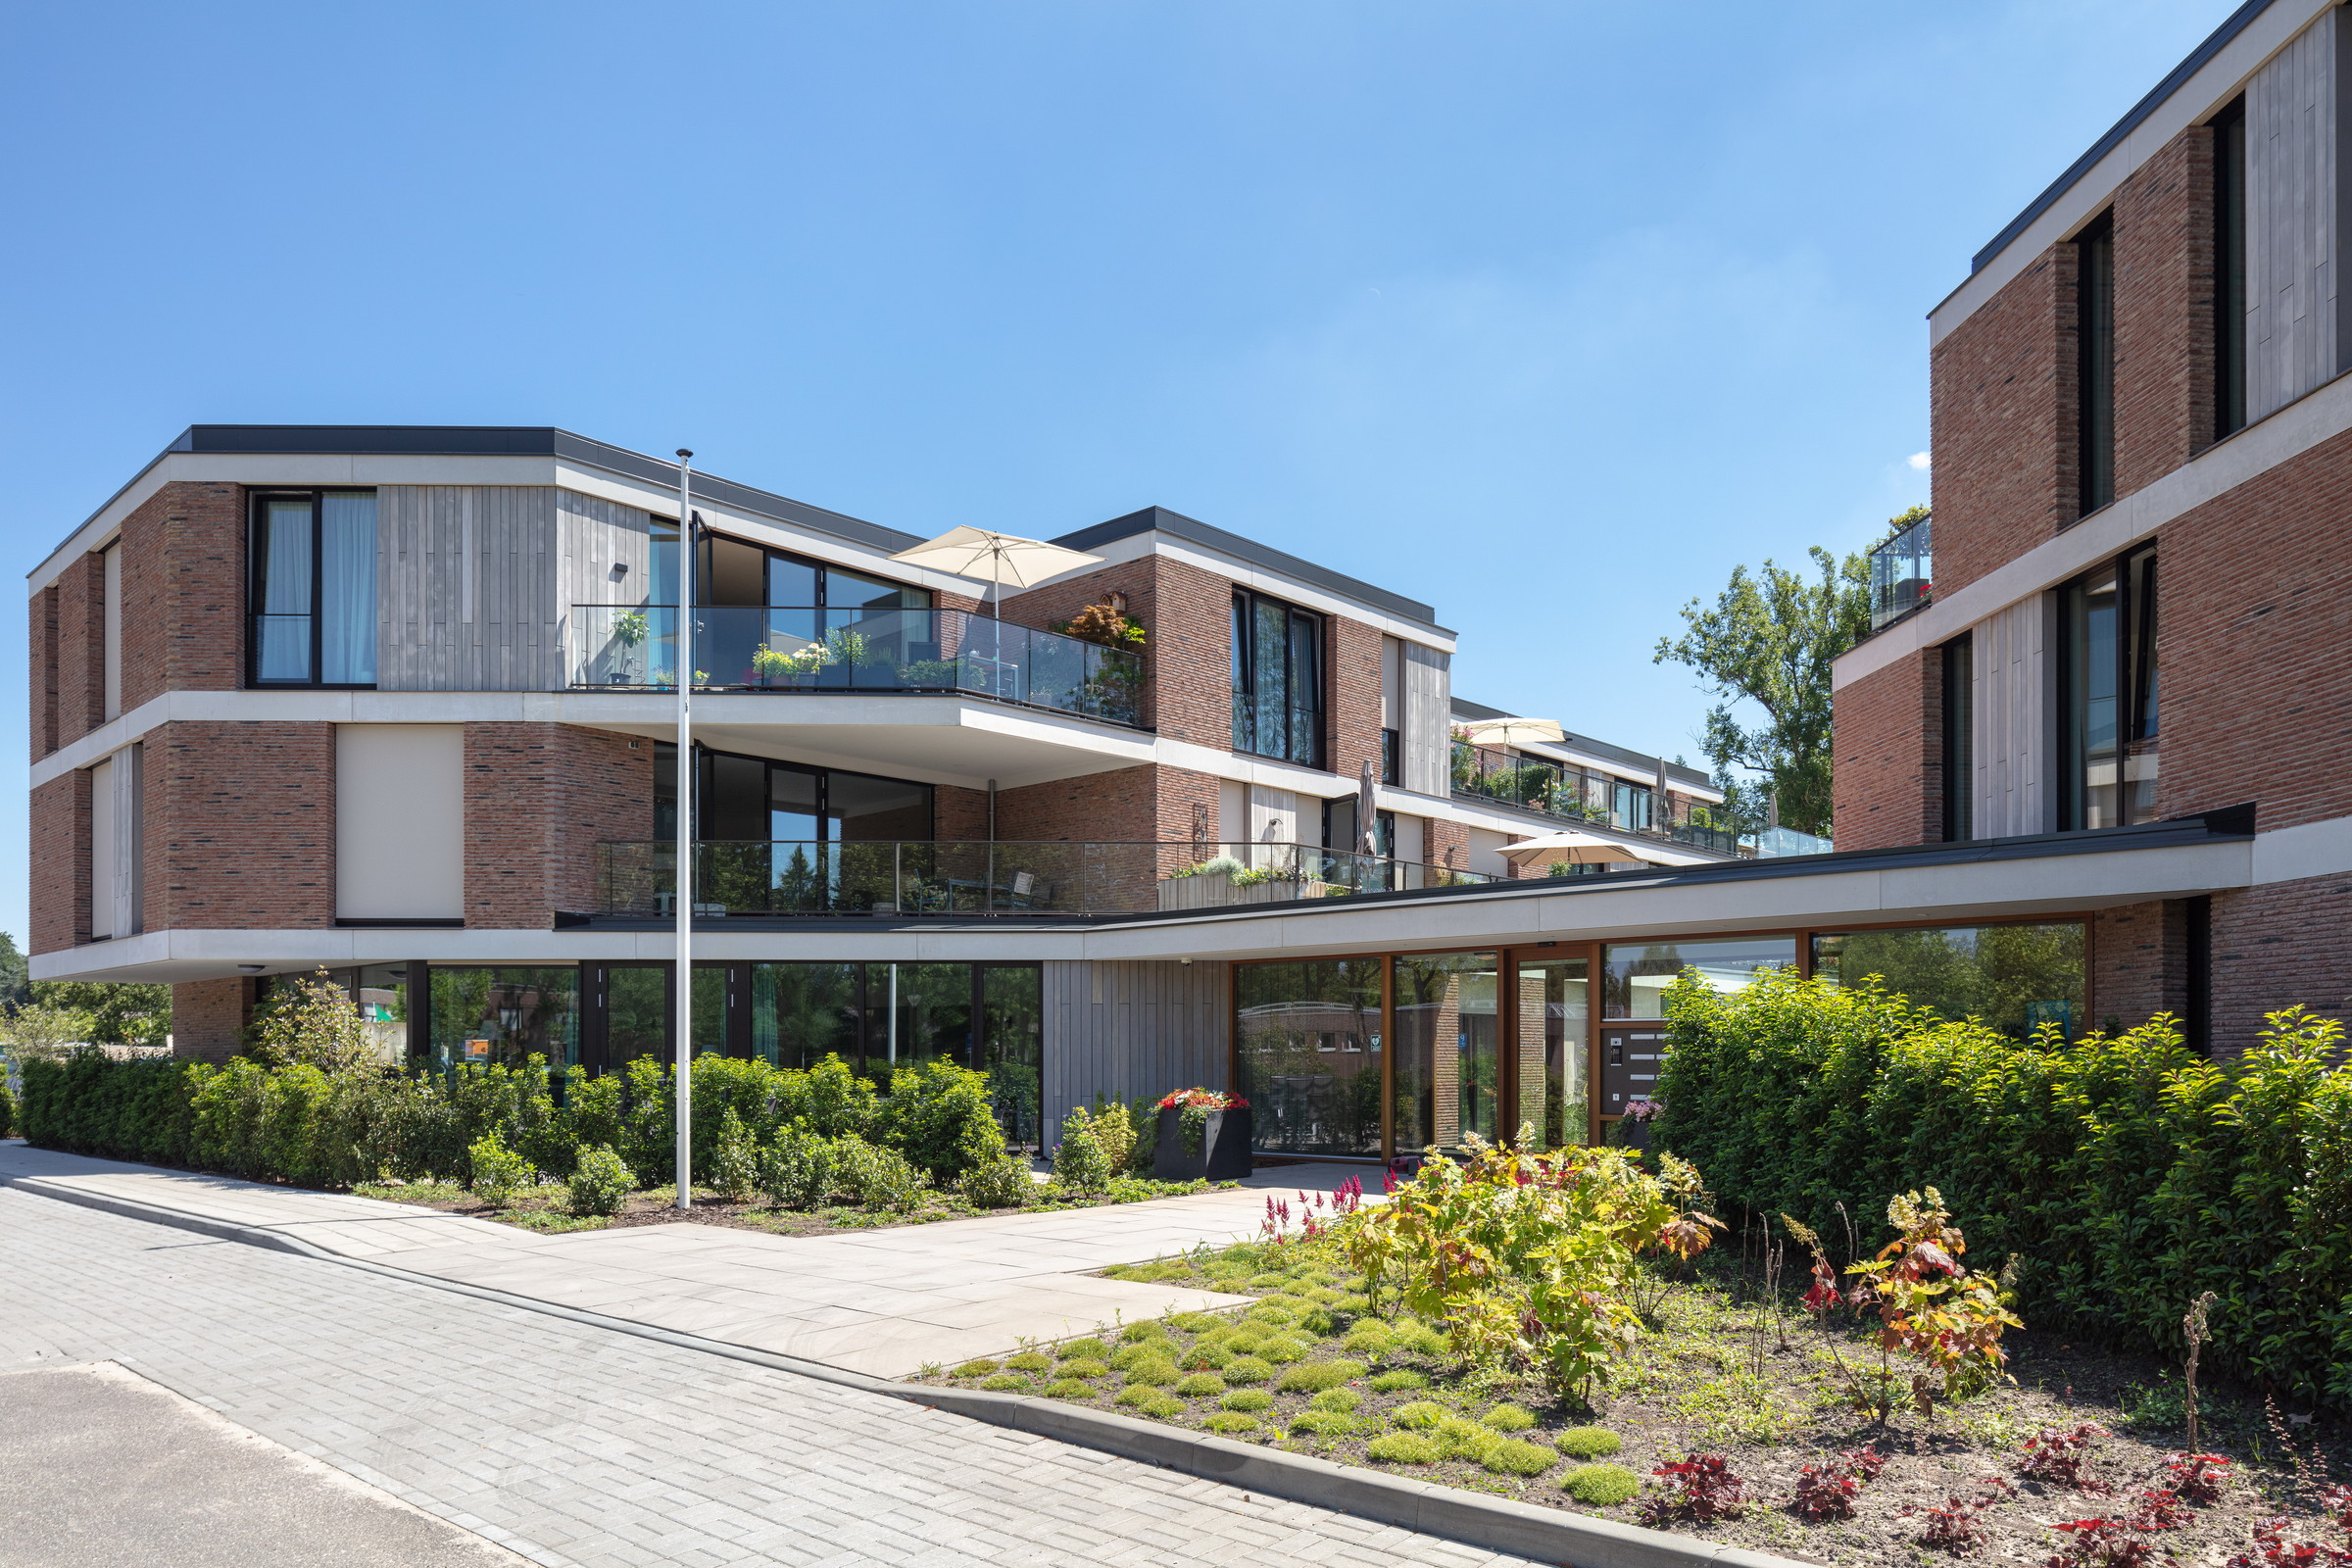 23-Zecc_Architecten-Surplus-Zeist-Apartment_buildin.JPG